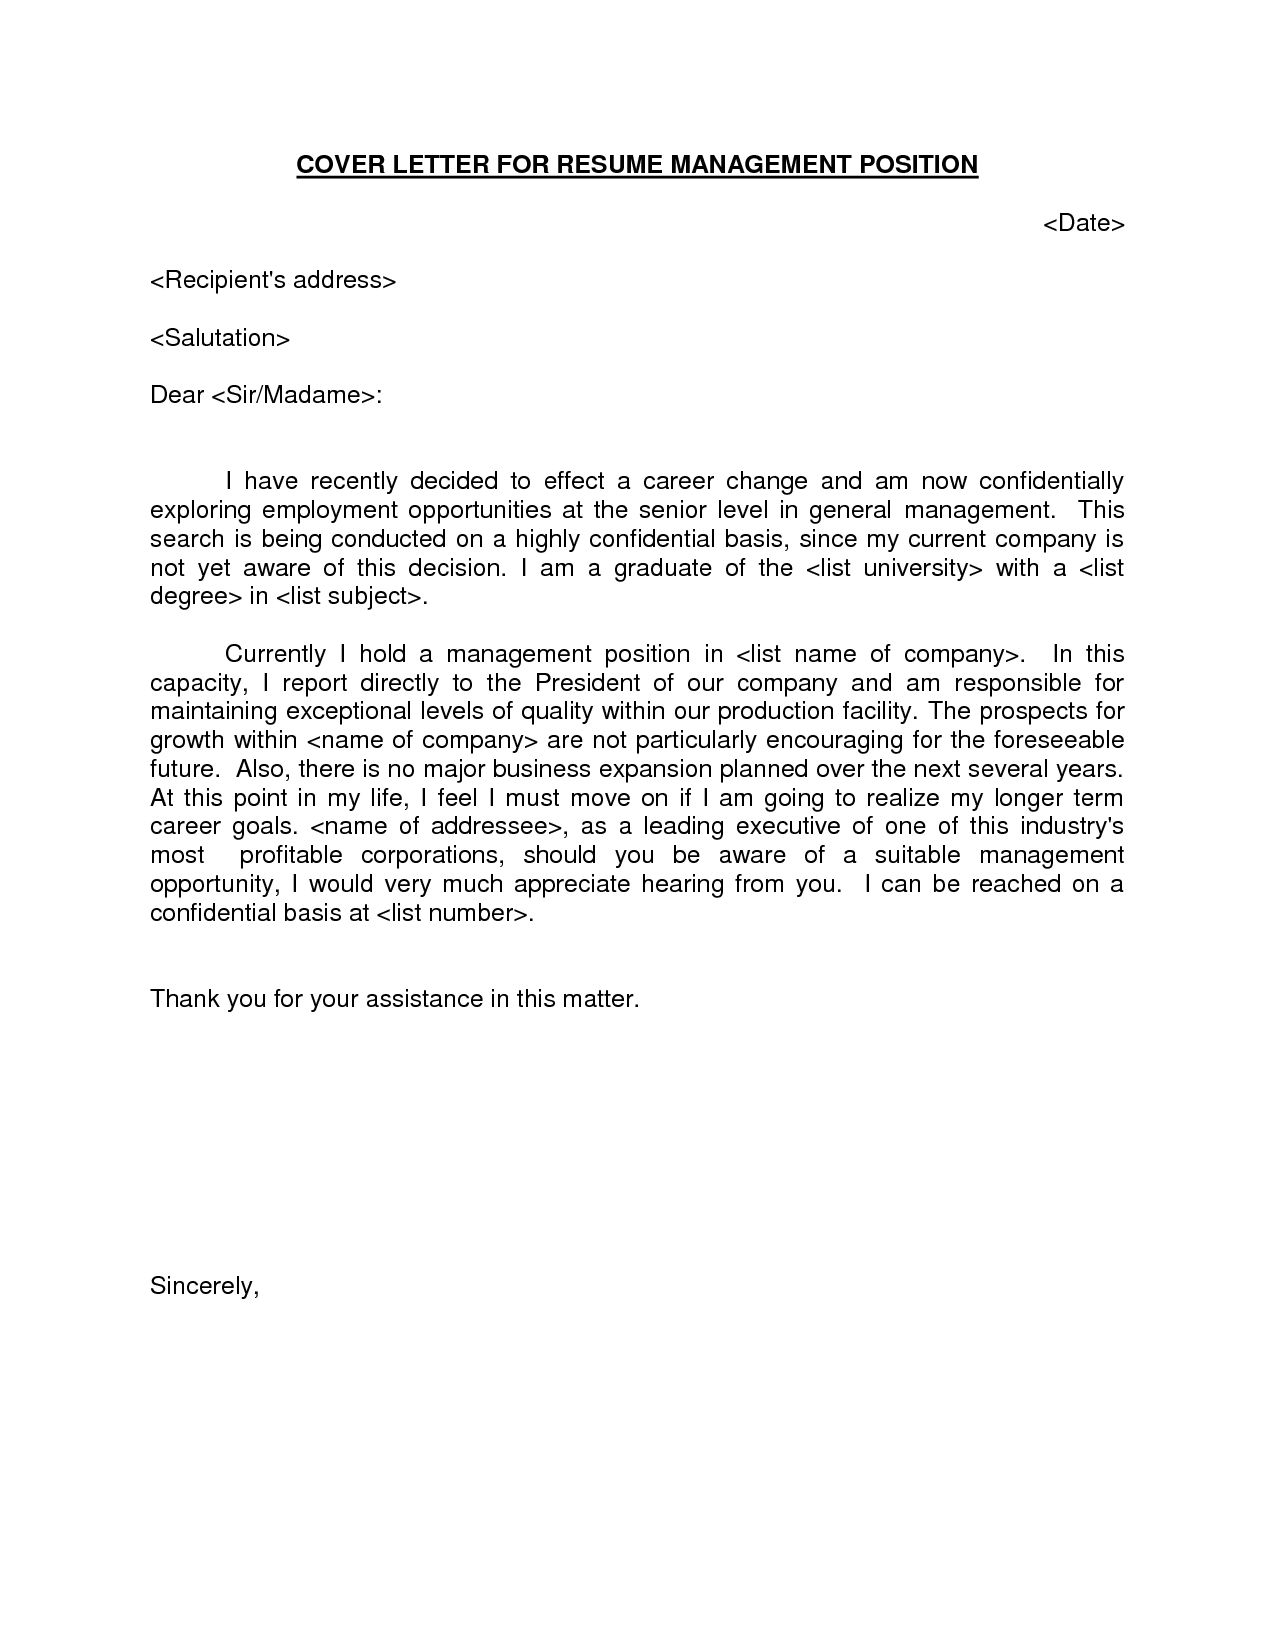 Bank Risk Manager Cover Letter Cover Letter Risk Management Position Templates Manager Example